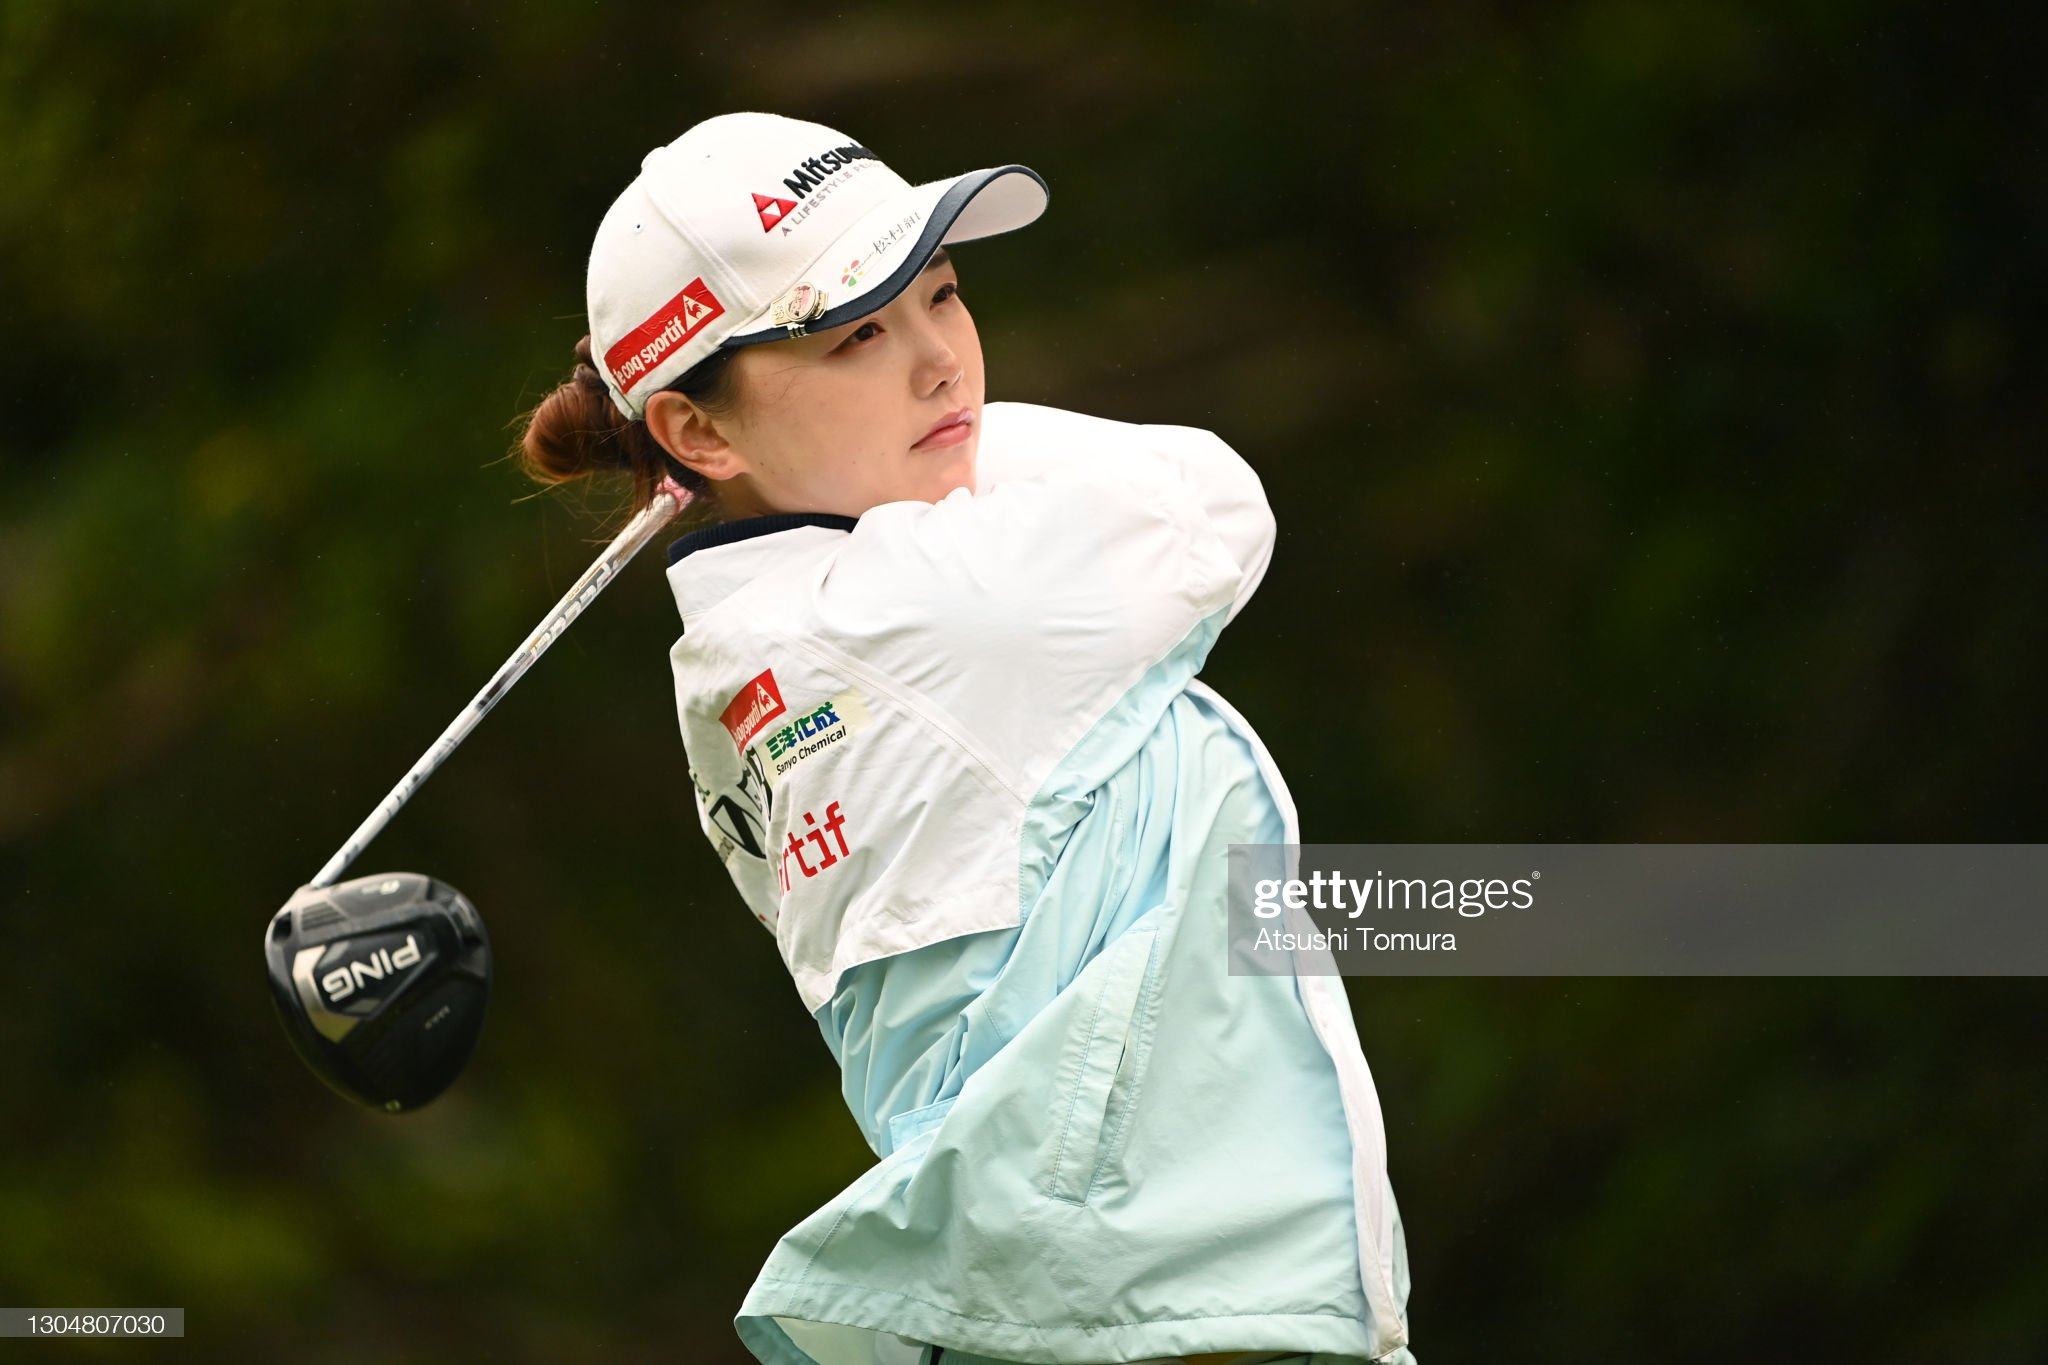 https://media.gettyimages.com/photos/yuting-seki-of-china-hits-her-tee-shot-on-the-12th-hole-during-the-picture-id1304807030?s=2048x2048